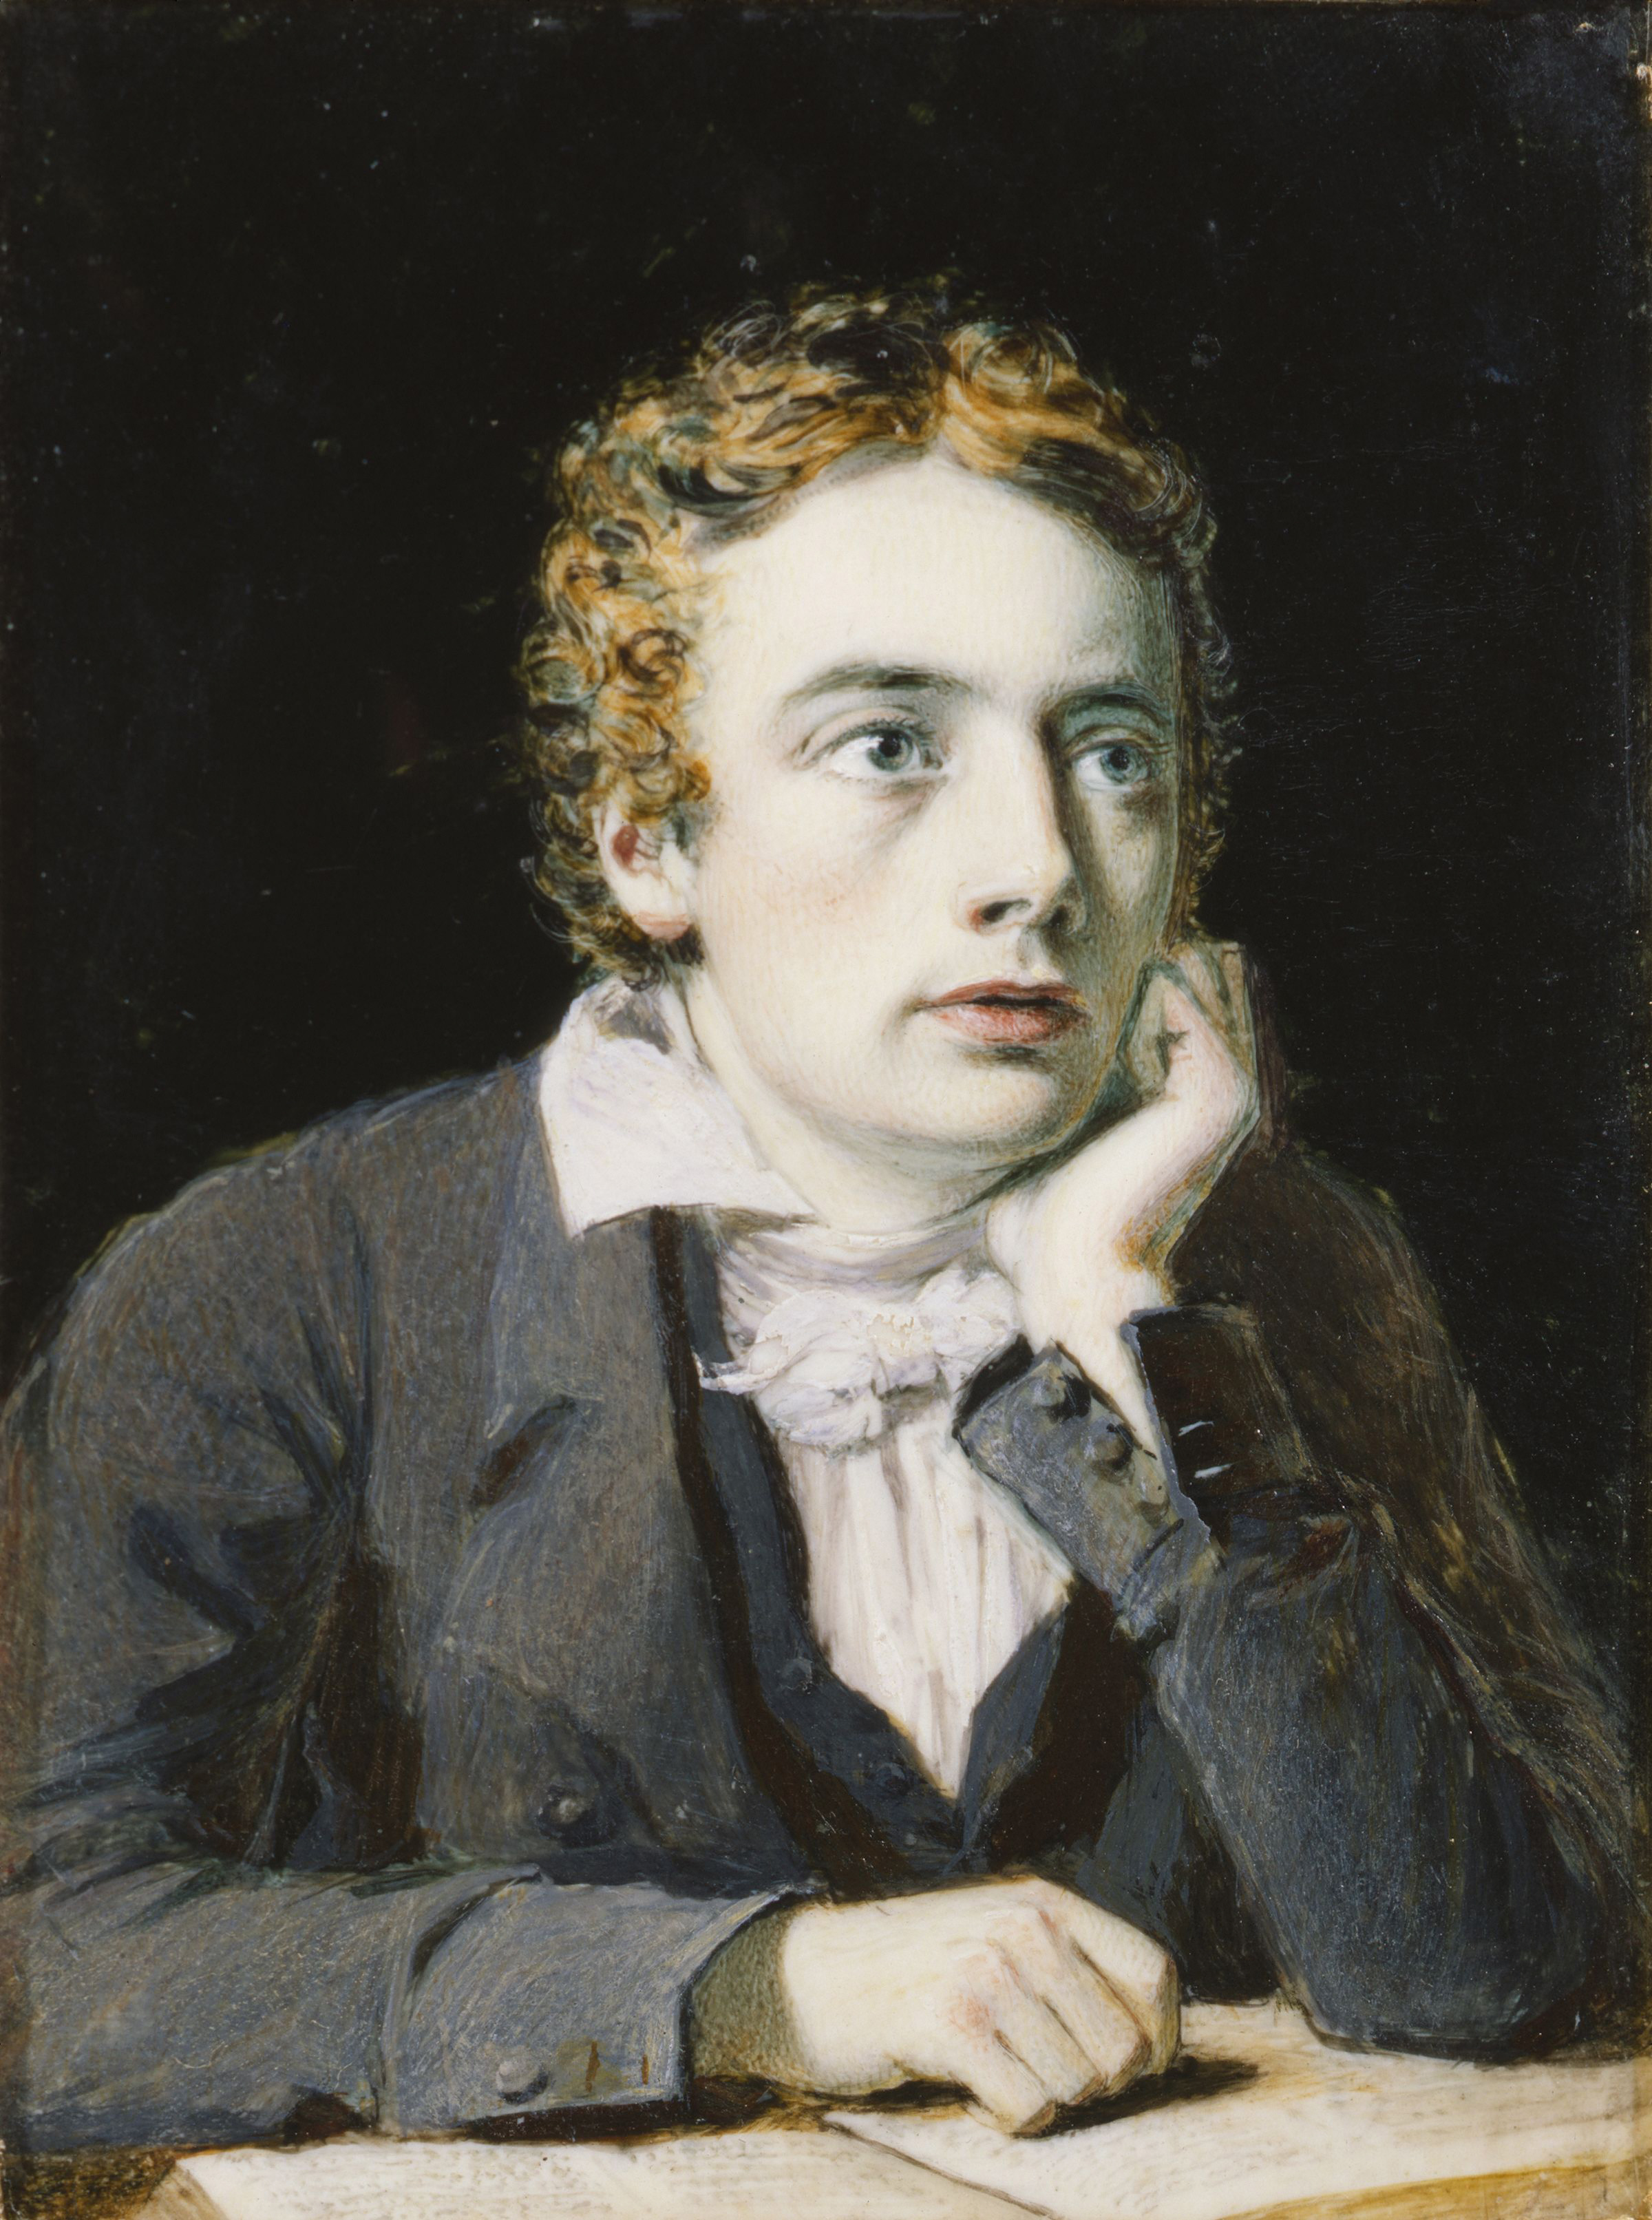 the themes of death and nature in the poems of john keats dylan thomas and william wordsworth Intro to poetry-exam 2 study -william blake-william wordsworth-john keats 1,800 poems in hand-sewn books called fascicles after her death-themes.